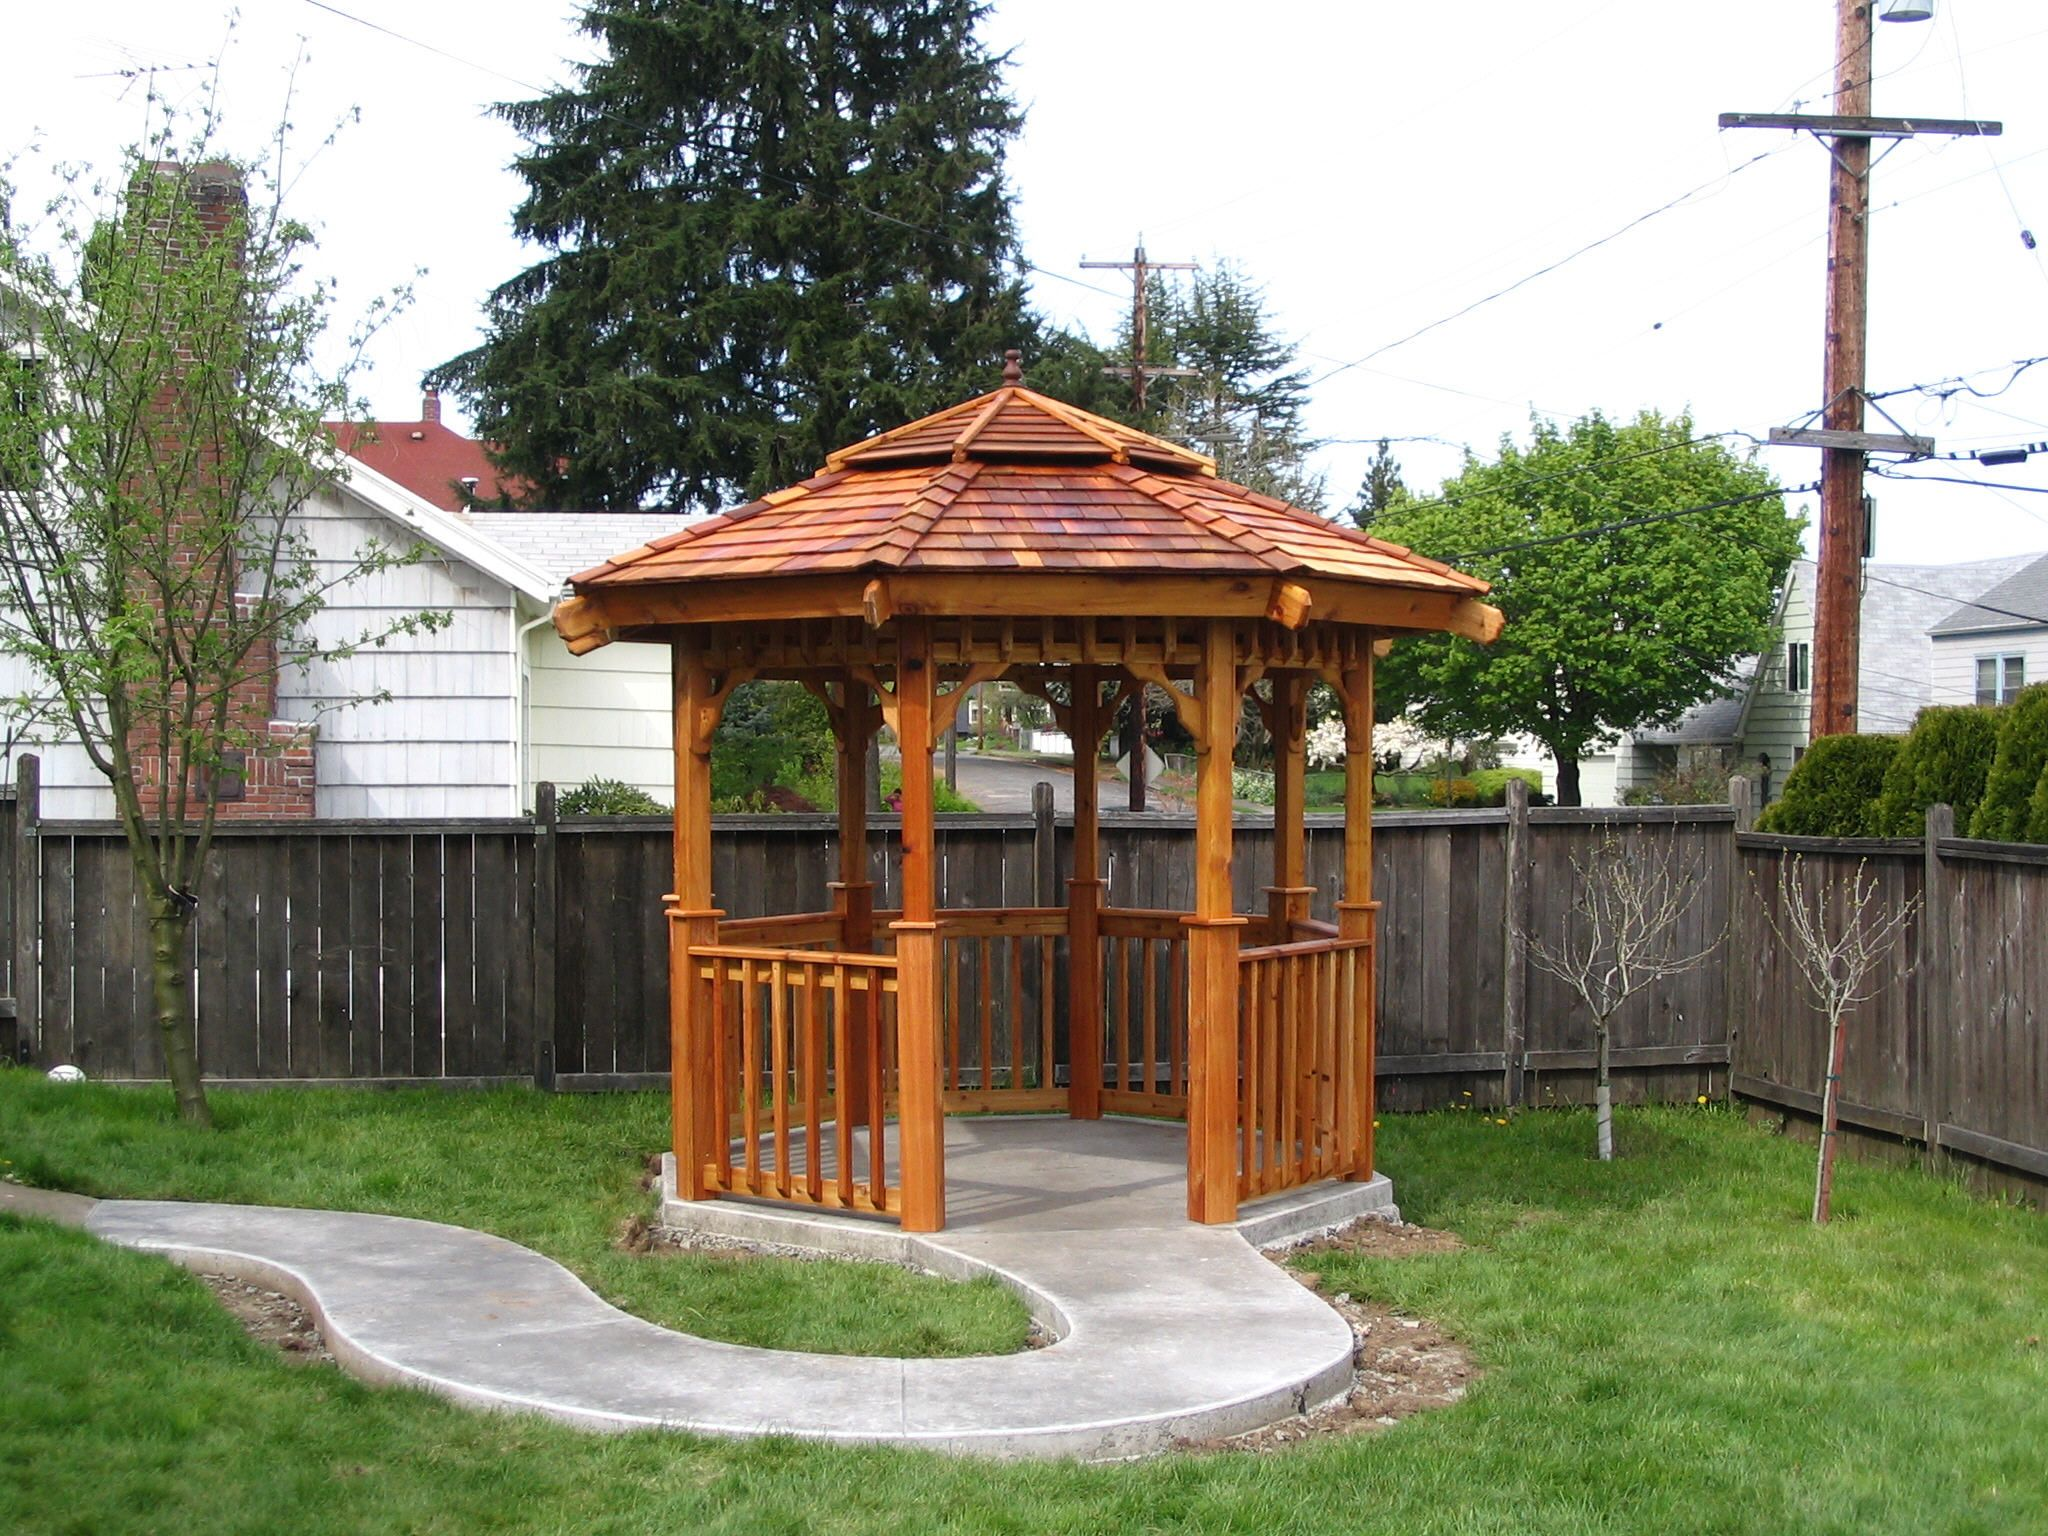 8x8 gazebo with seating google search retaining wall gazebo